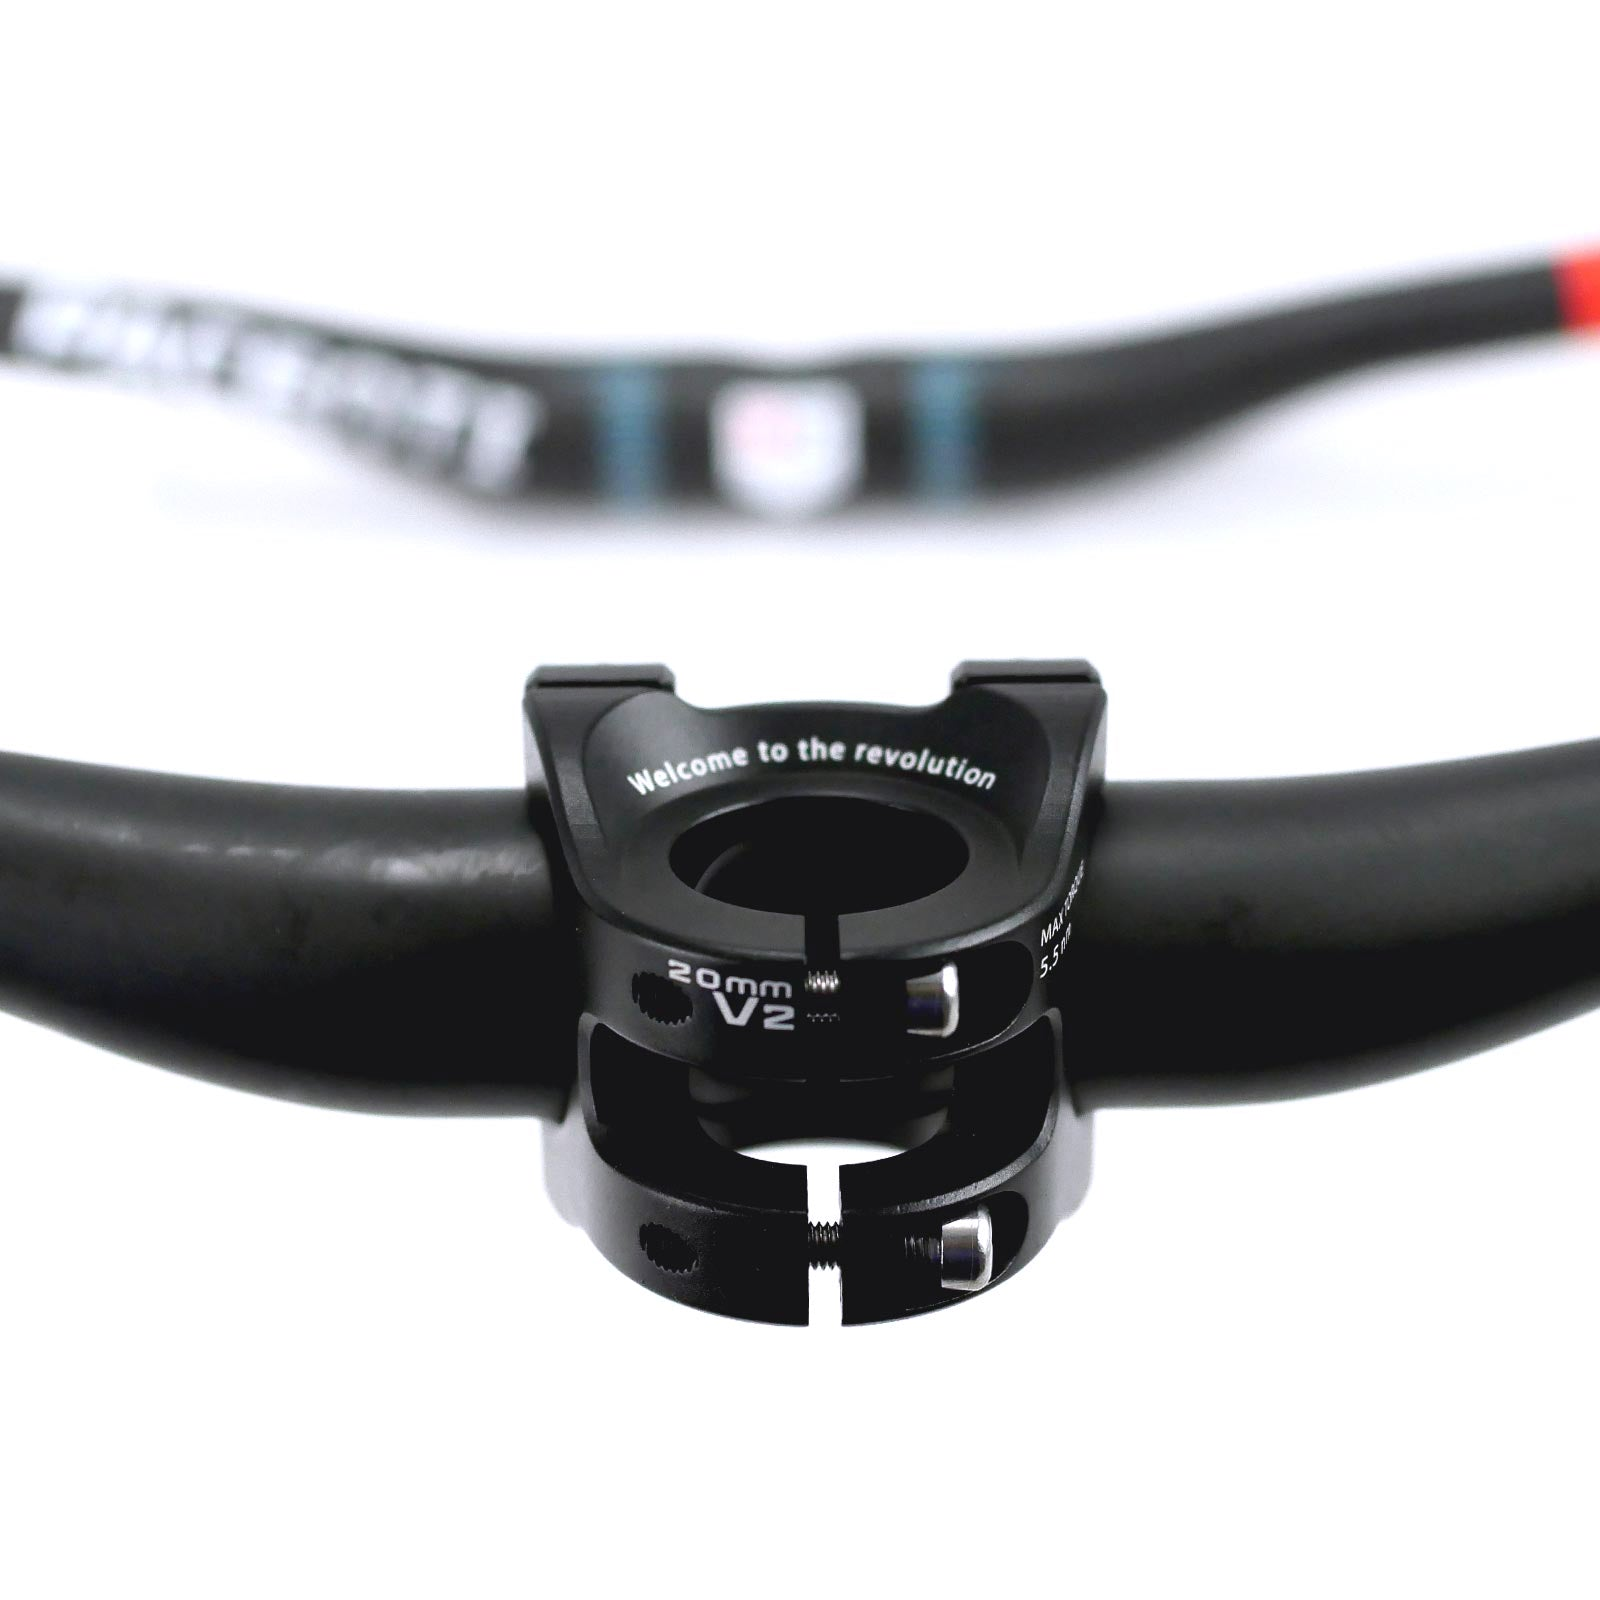 P-Dent carbon bar and stem set 15mm rise